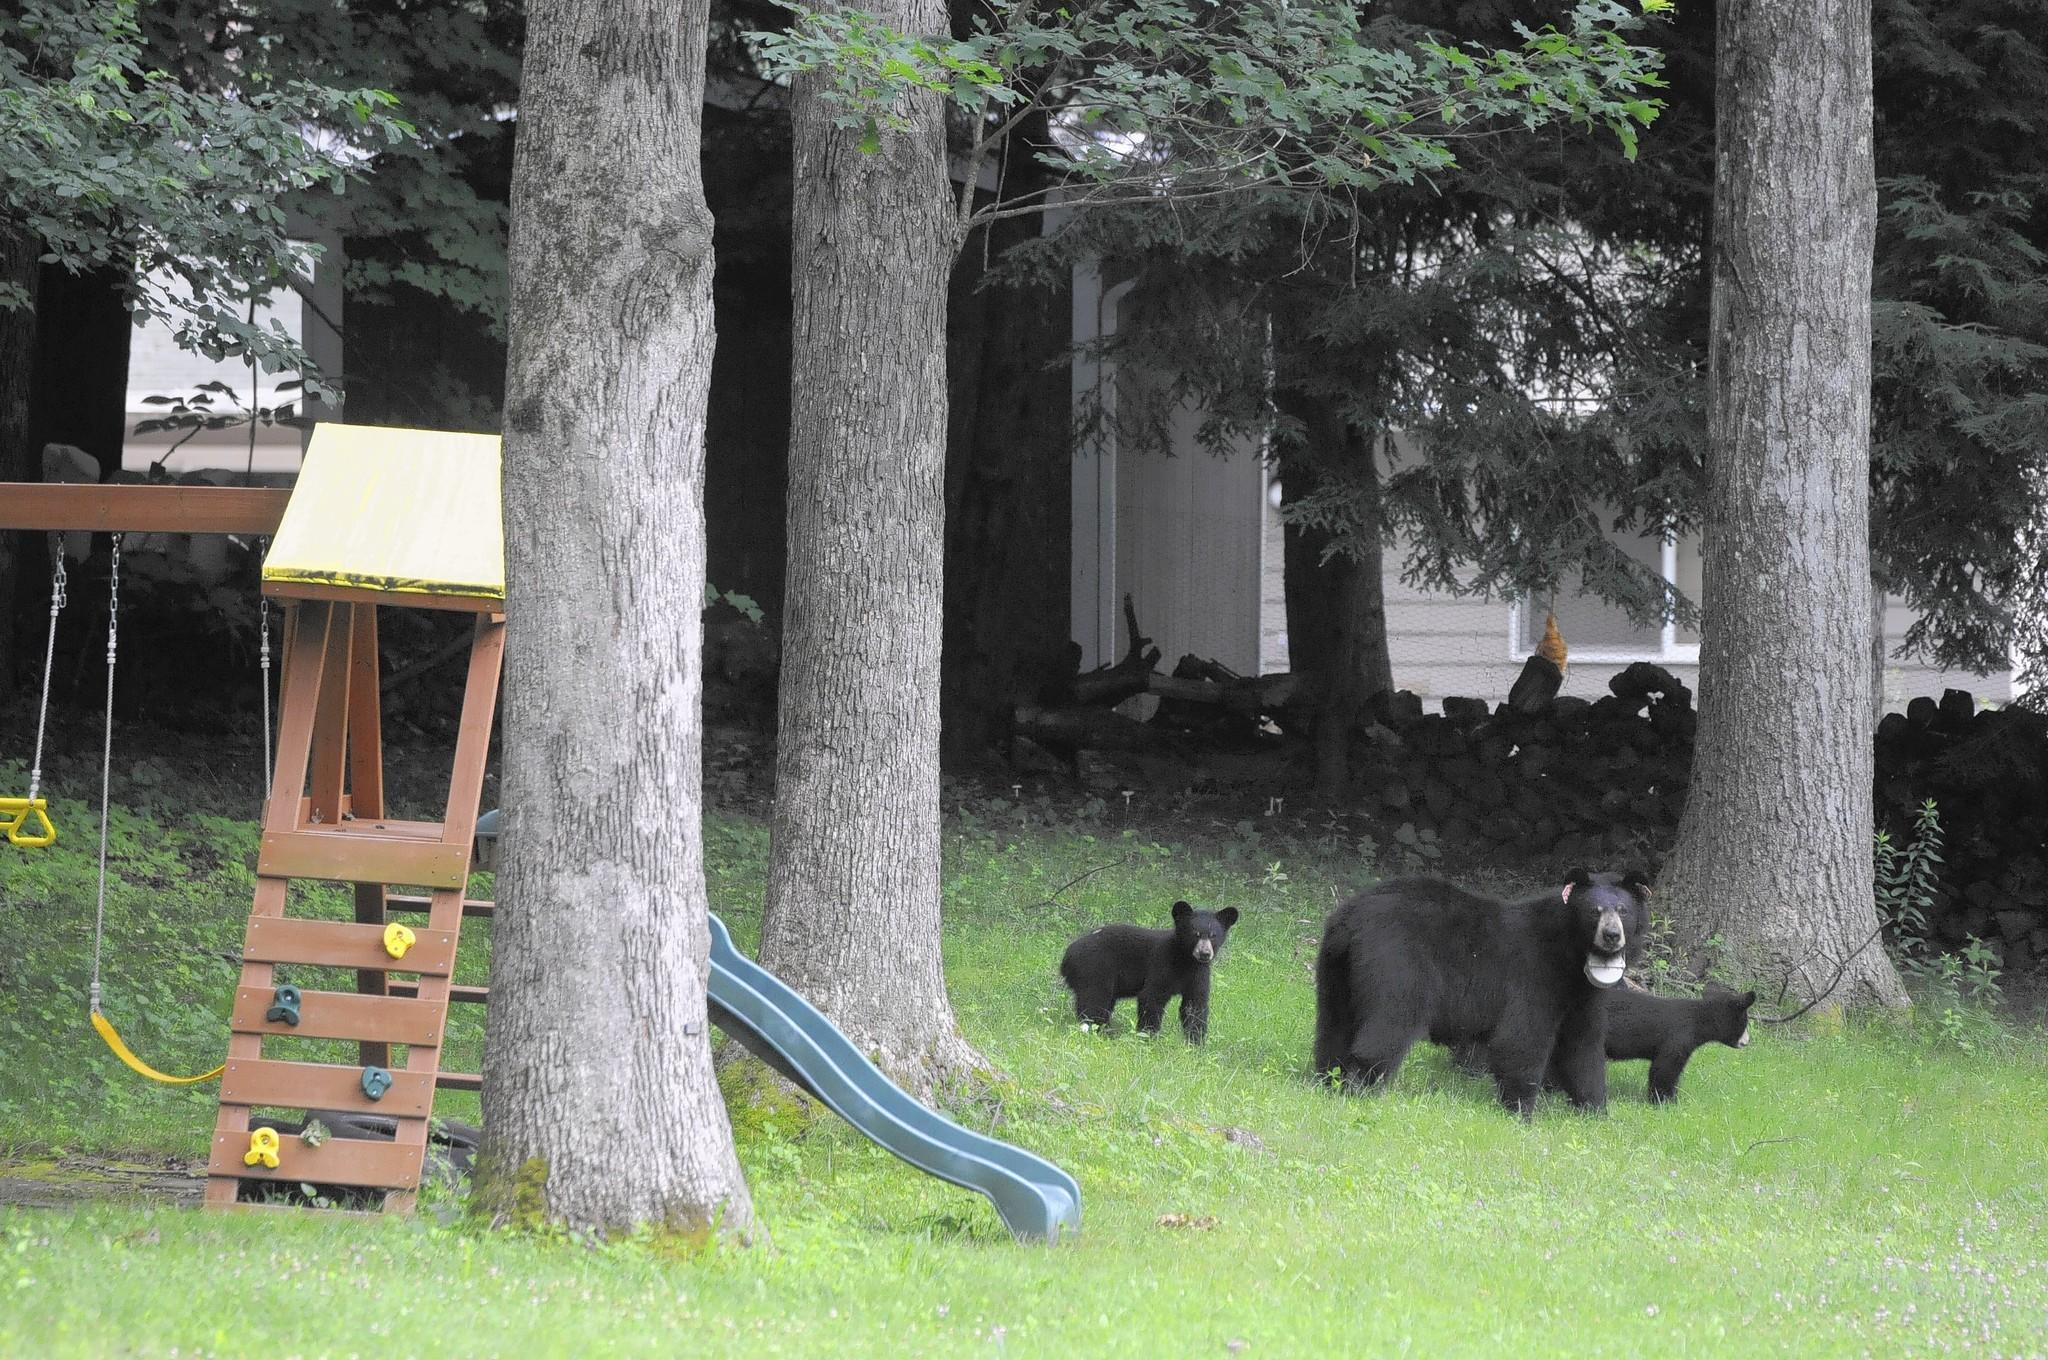 A mother bear and her three cubs wondered the yards of homes along Arch Road in Avon on July 6, 2013, looking through garbage for a quick meal. The bears head back to the back of the yard after rummaging through a garbage can left on the curb for pick up.